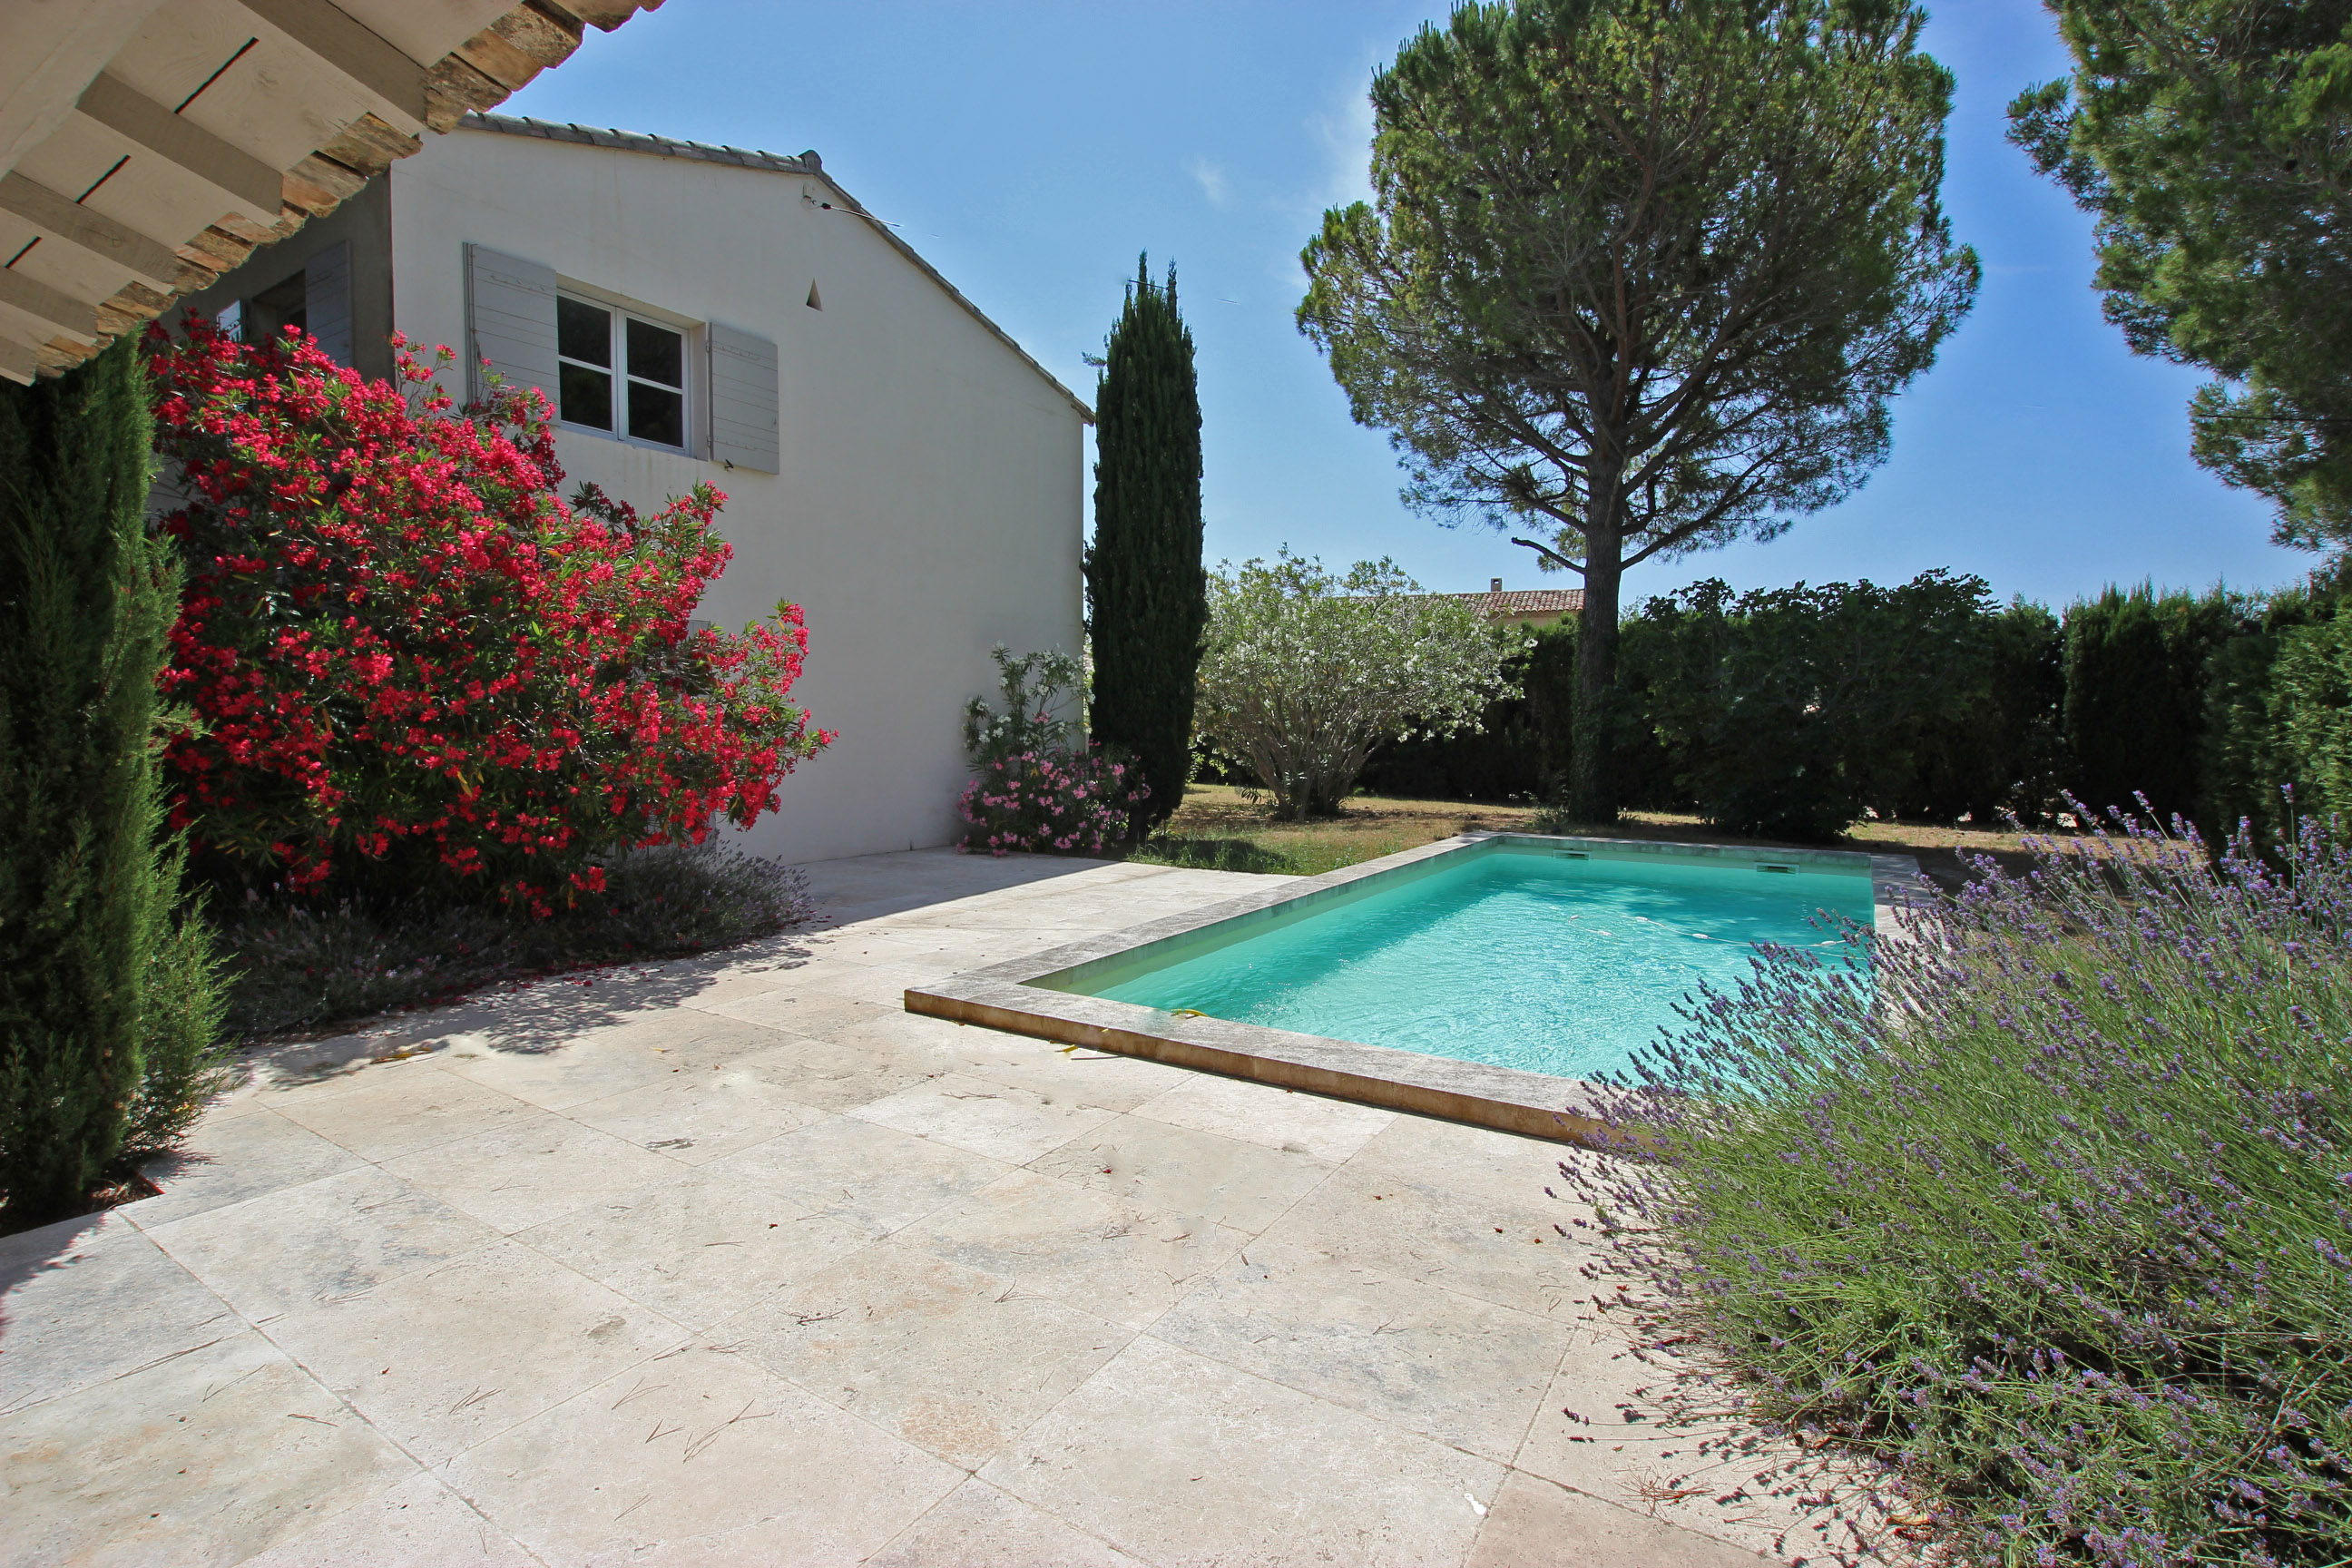 Additional photo for property listing at Charming townhouse in Provence  Saint Remy De Provence, Provence-Alpes-Cote D'Azur 13210 France